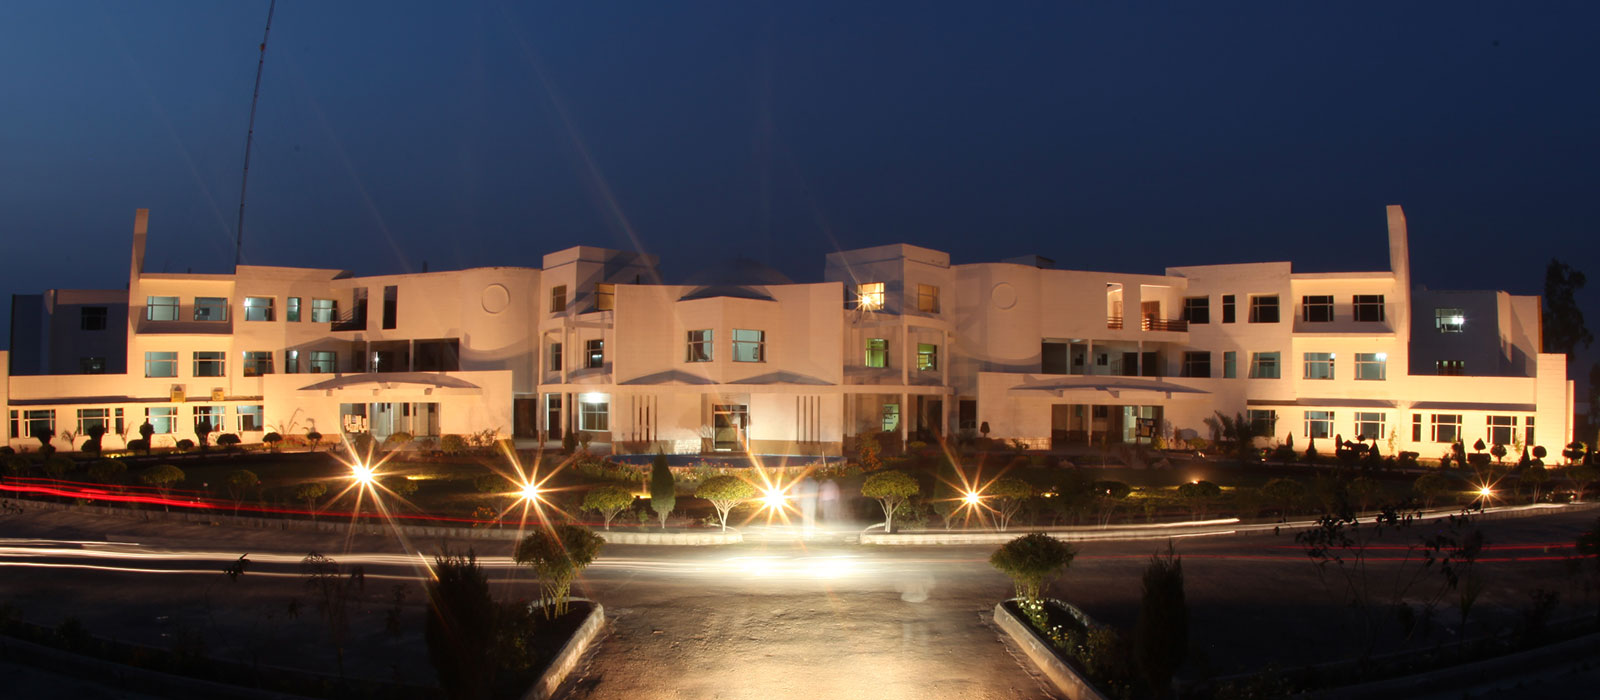 Ferozepur College of Engineering and Technology